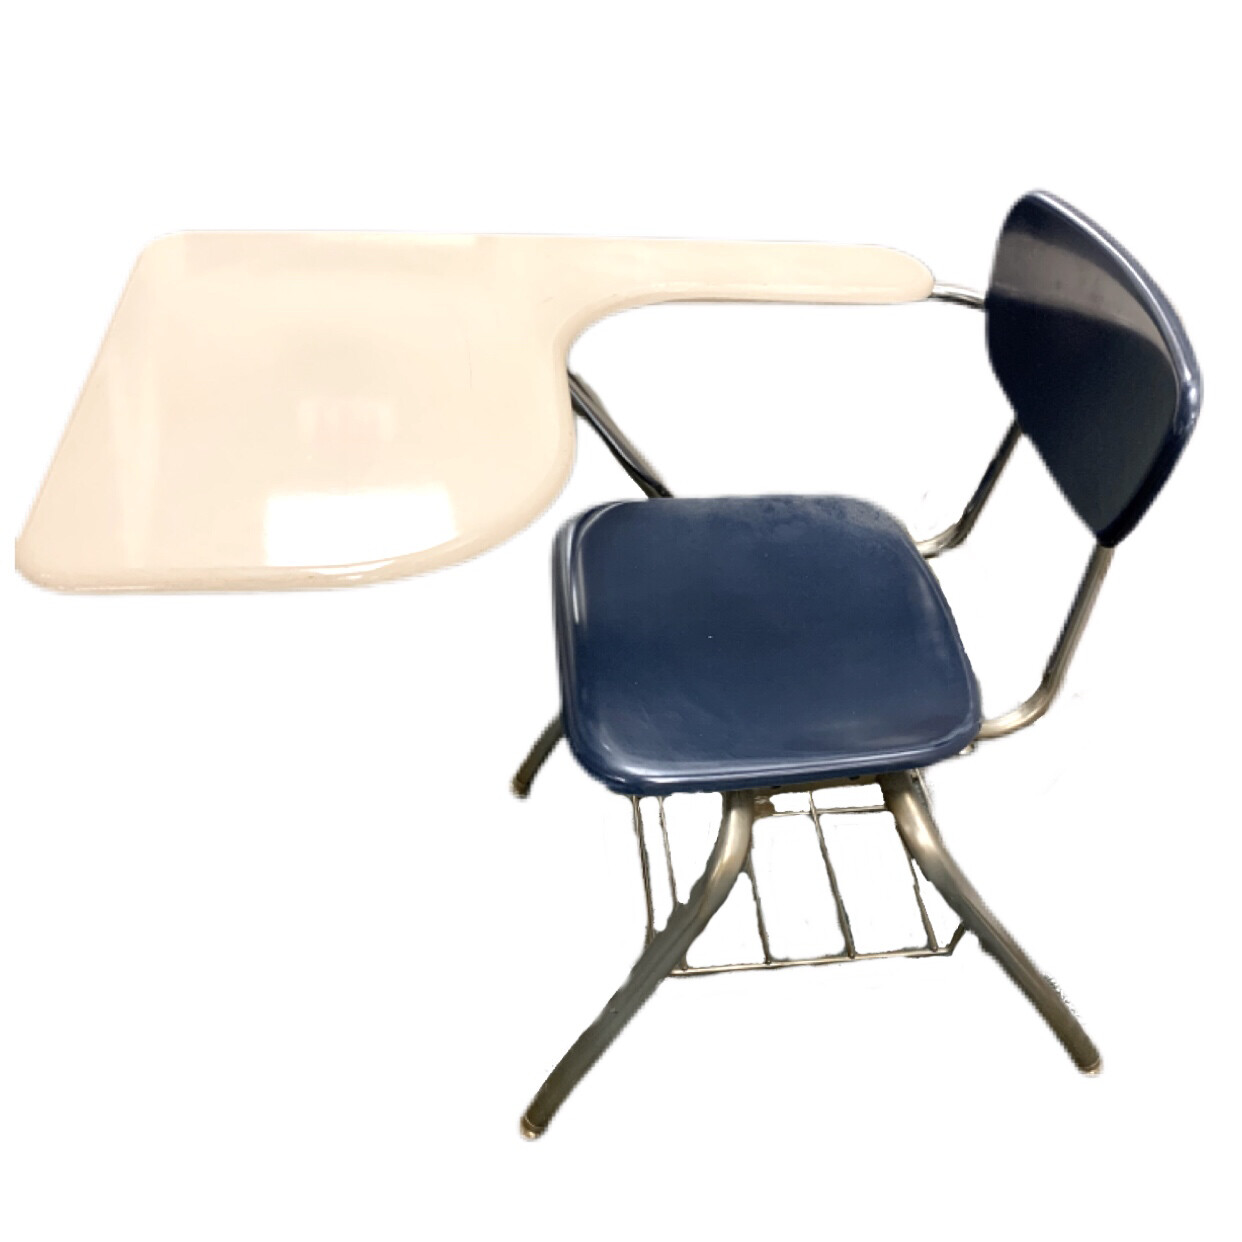 Classic Metal School Desk with Chair